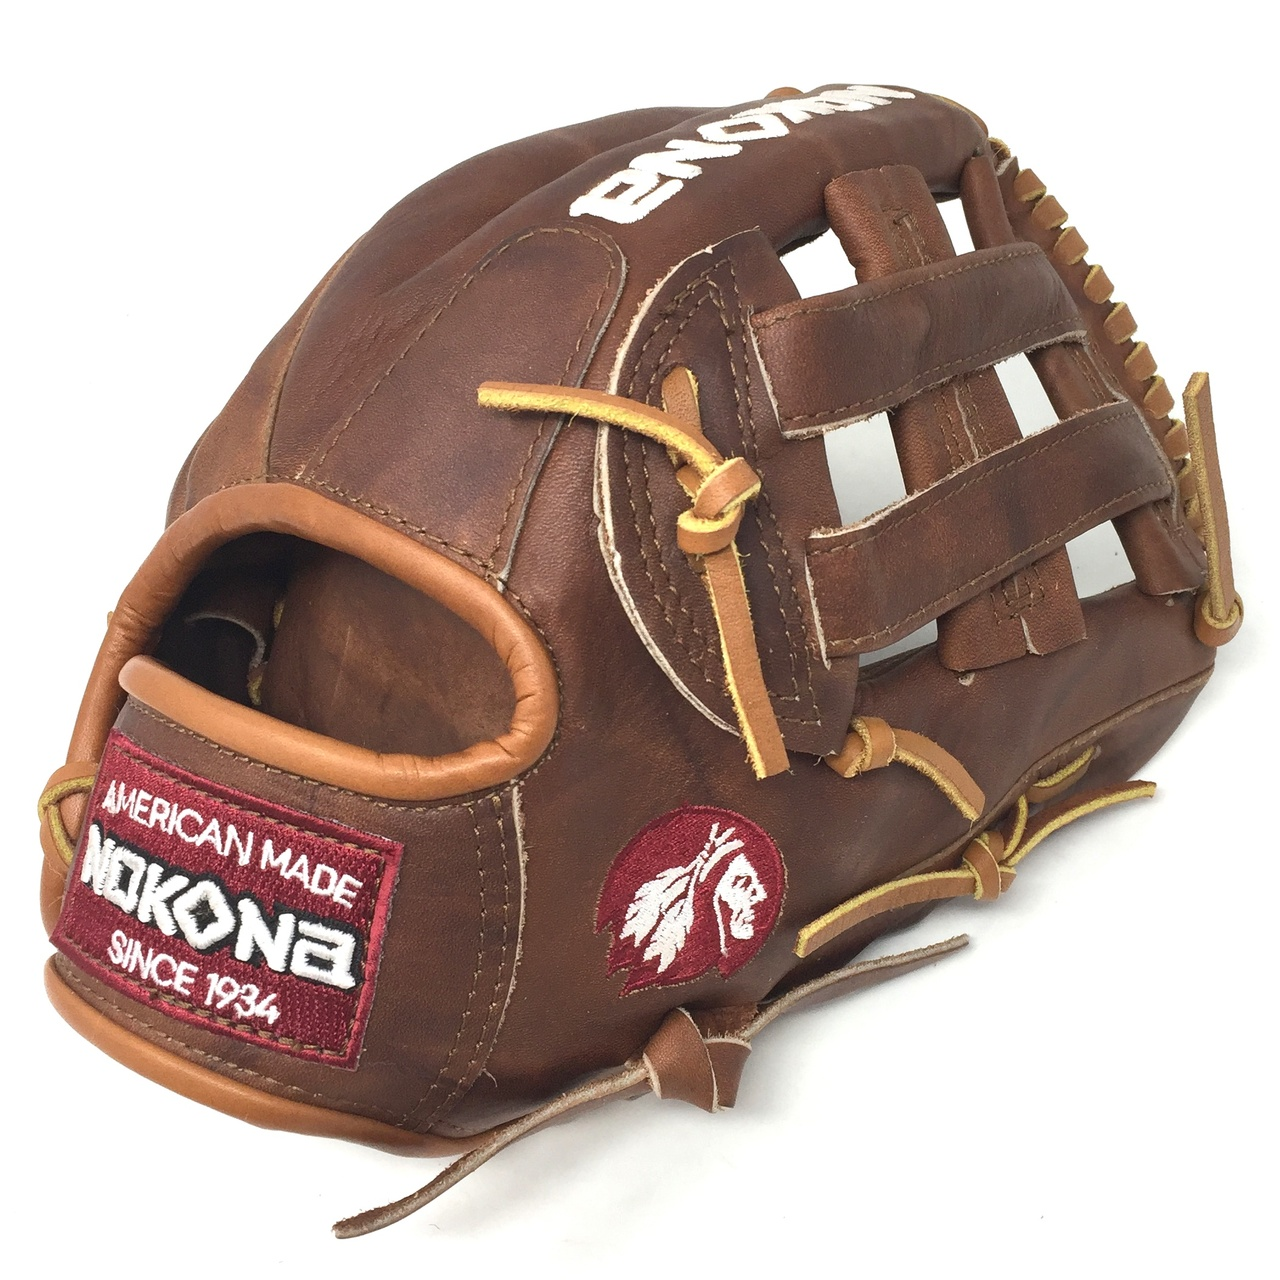 nokona-walnut-h-web-11-75-inch-w-1175-baseball-glove-right-hand-throw W-1175H-RightHandThrow  808808891680 <span>Inspired by Nokona's history of handcrafting ball gloves in America for